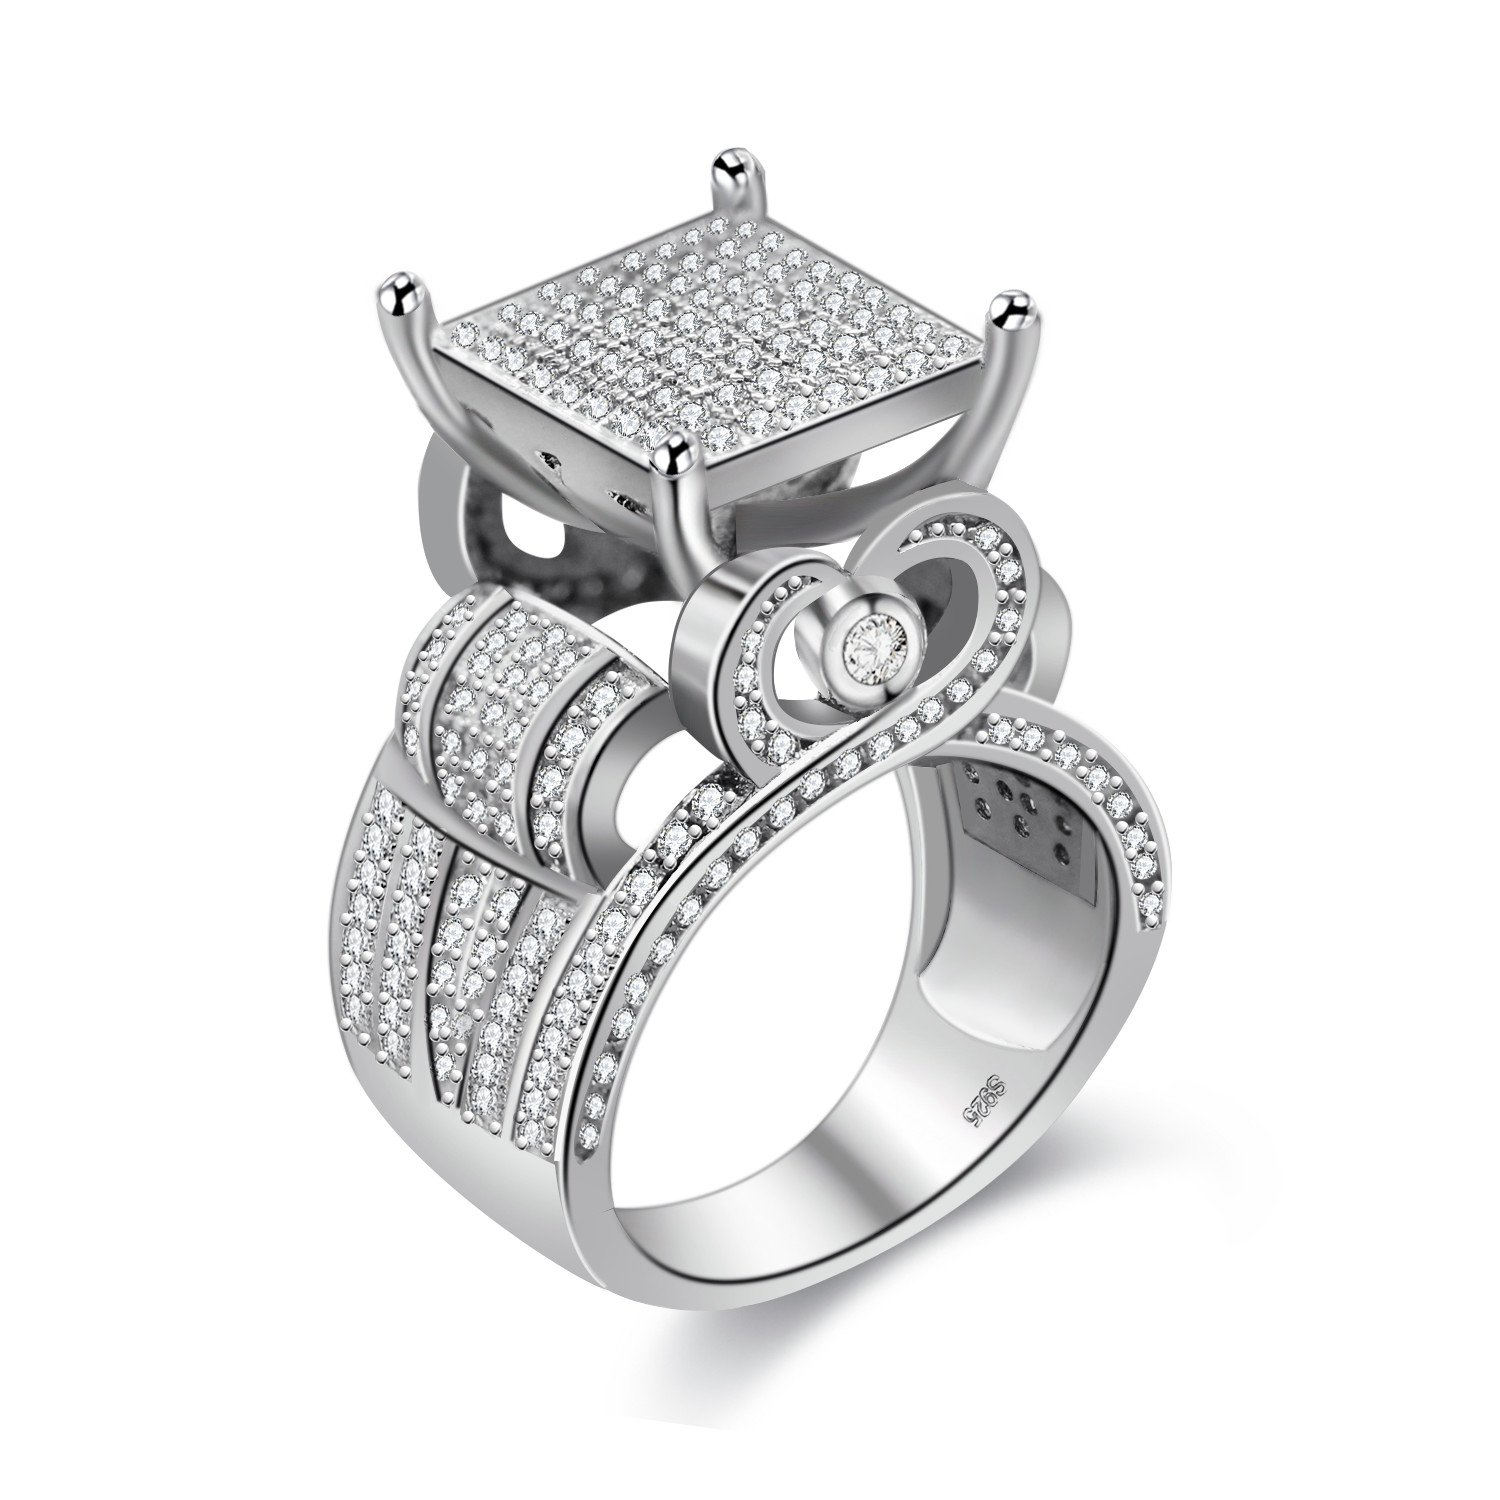 Uloveido 0.4 Wide Square CZ Cluster Engagement Love Ring Platinum Plated Architecture Ring with Tiny Round Lab Diamond Ring for Mom (Size 6 7 8 9 10) RA0221 RA0221-10